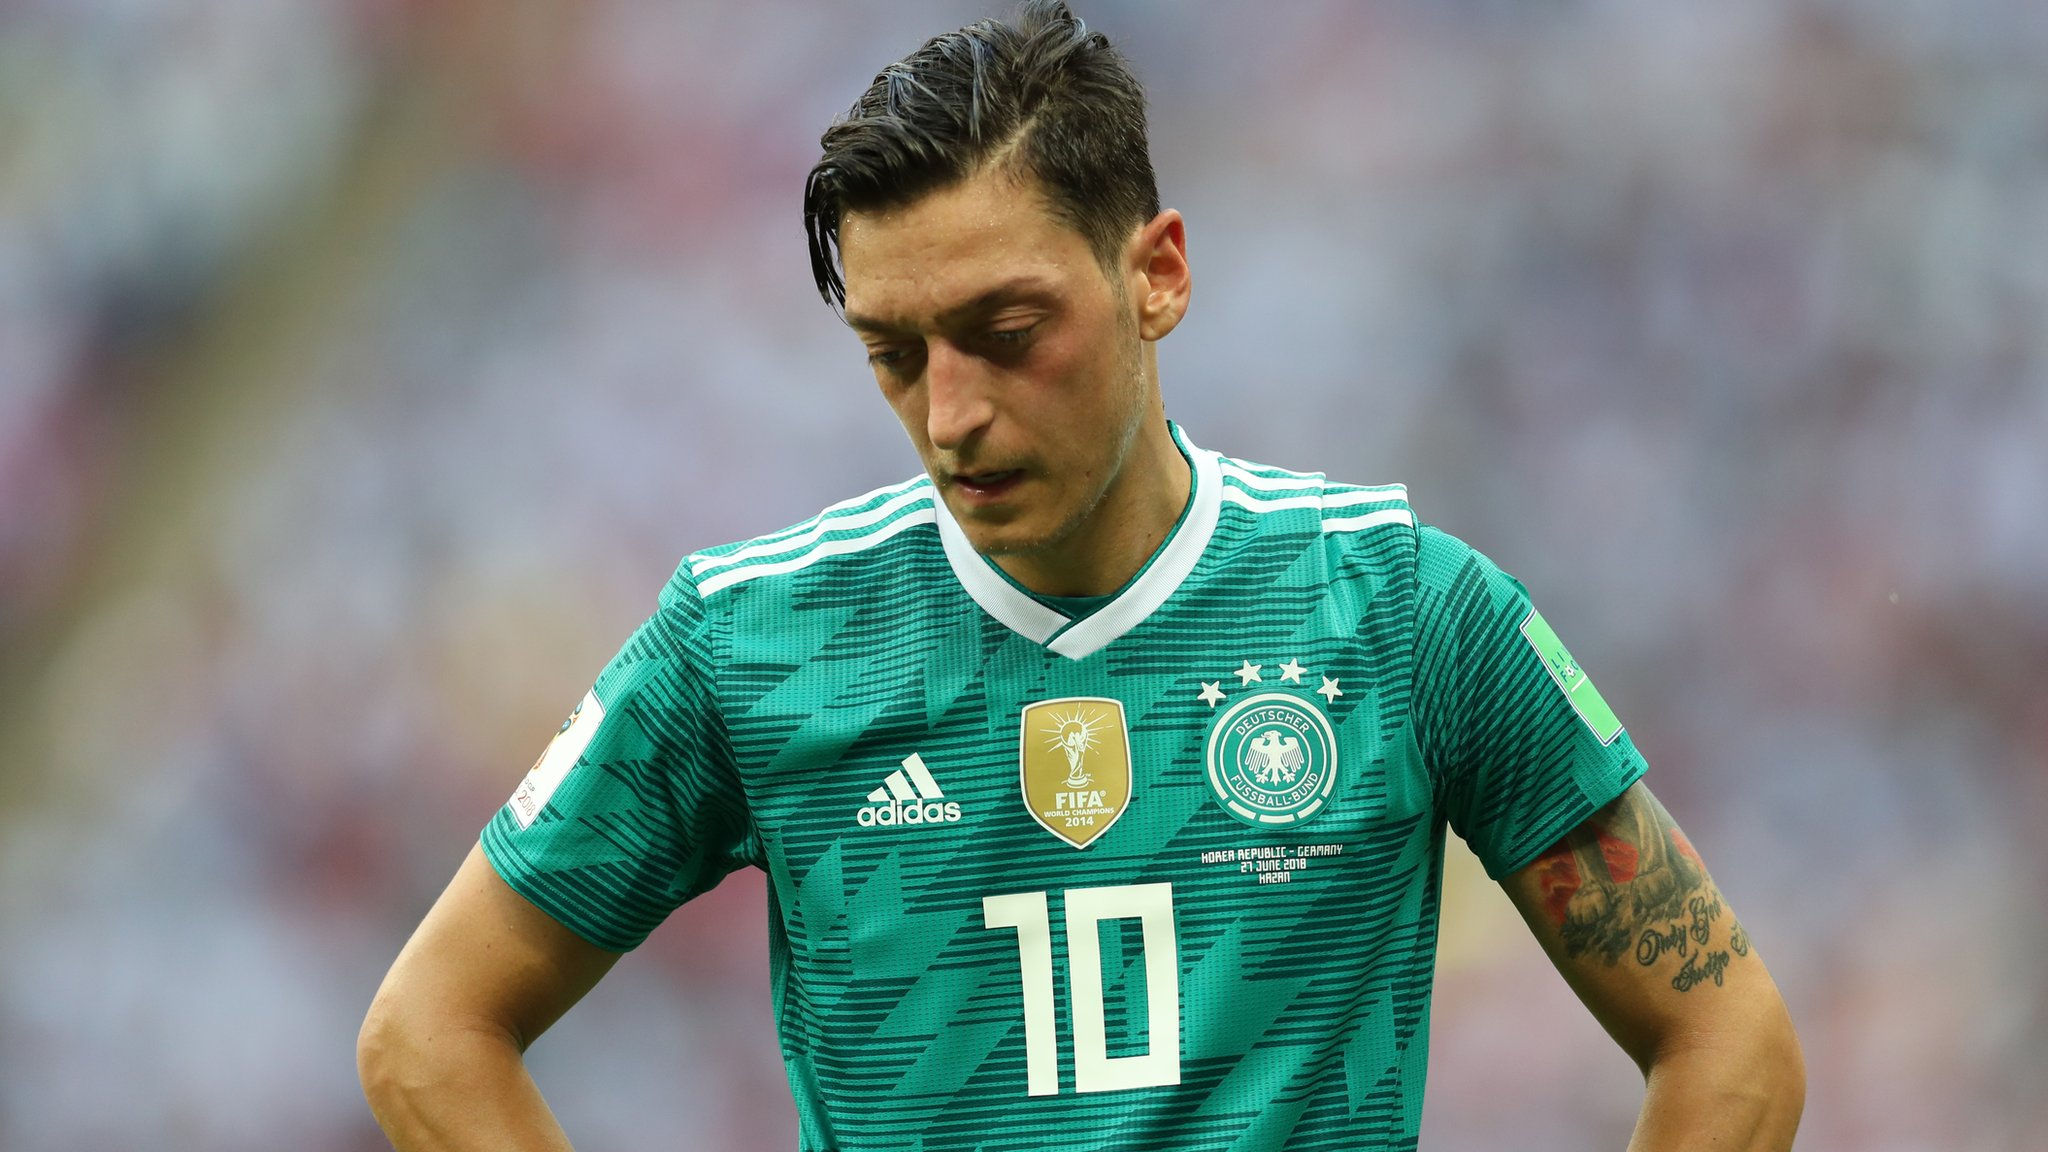 Mesut Ozil: Arsenal midfielder says he no longer wants to play for Germany